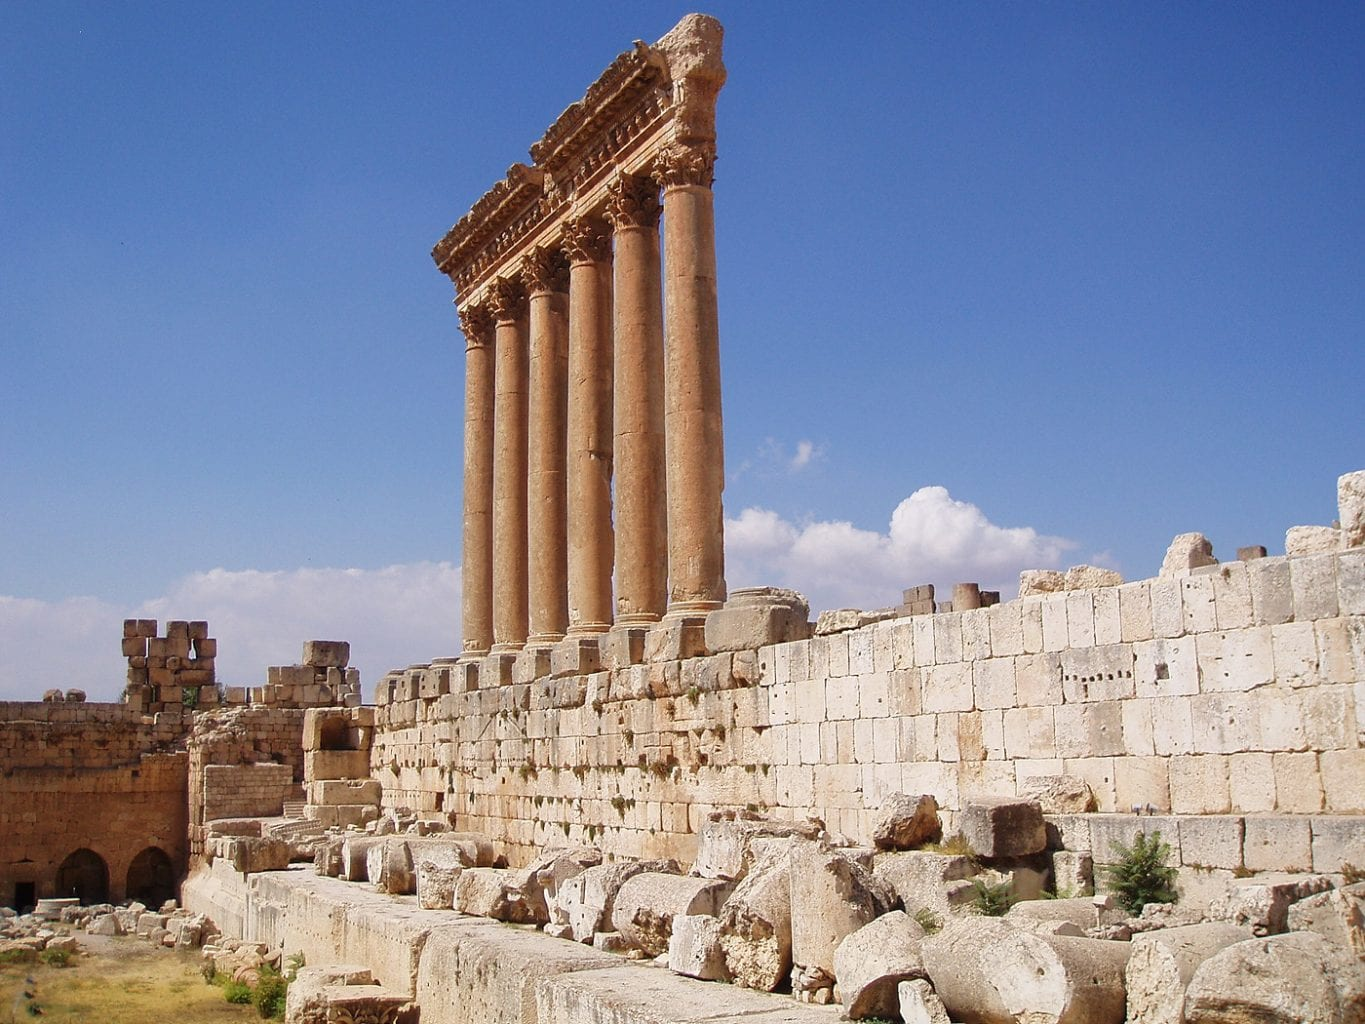 Ruins of the Temple of Jupiter. Credit: Teach Middle East